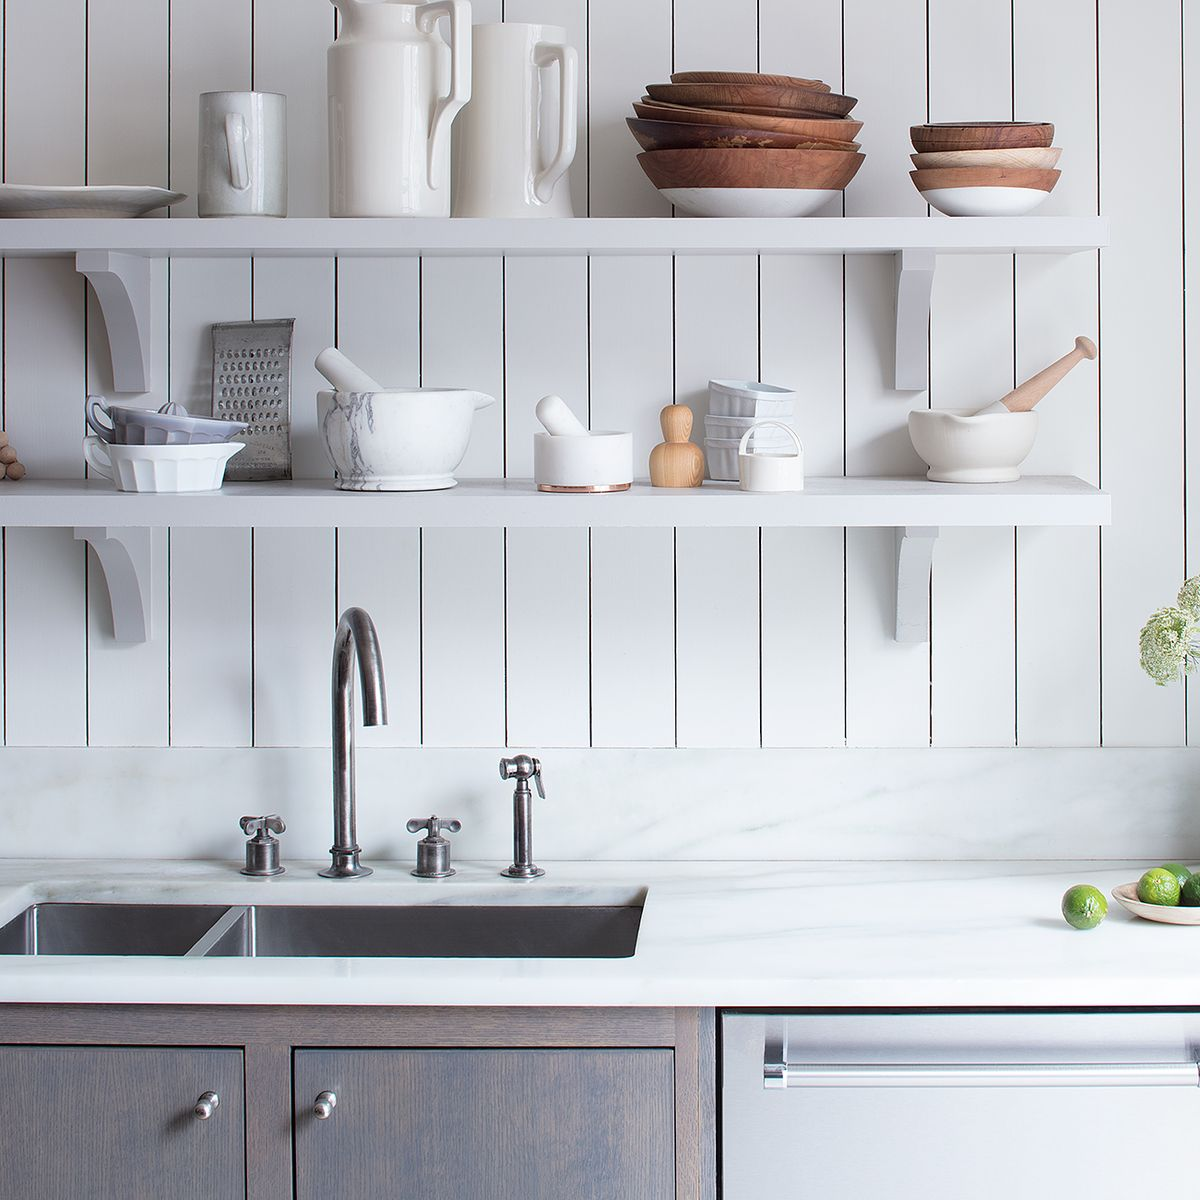 12 Best Small Kitchen Ideas Tiny Kitchen Designs To Save Space